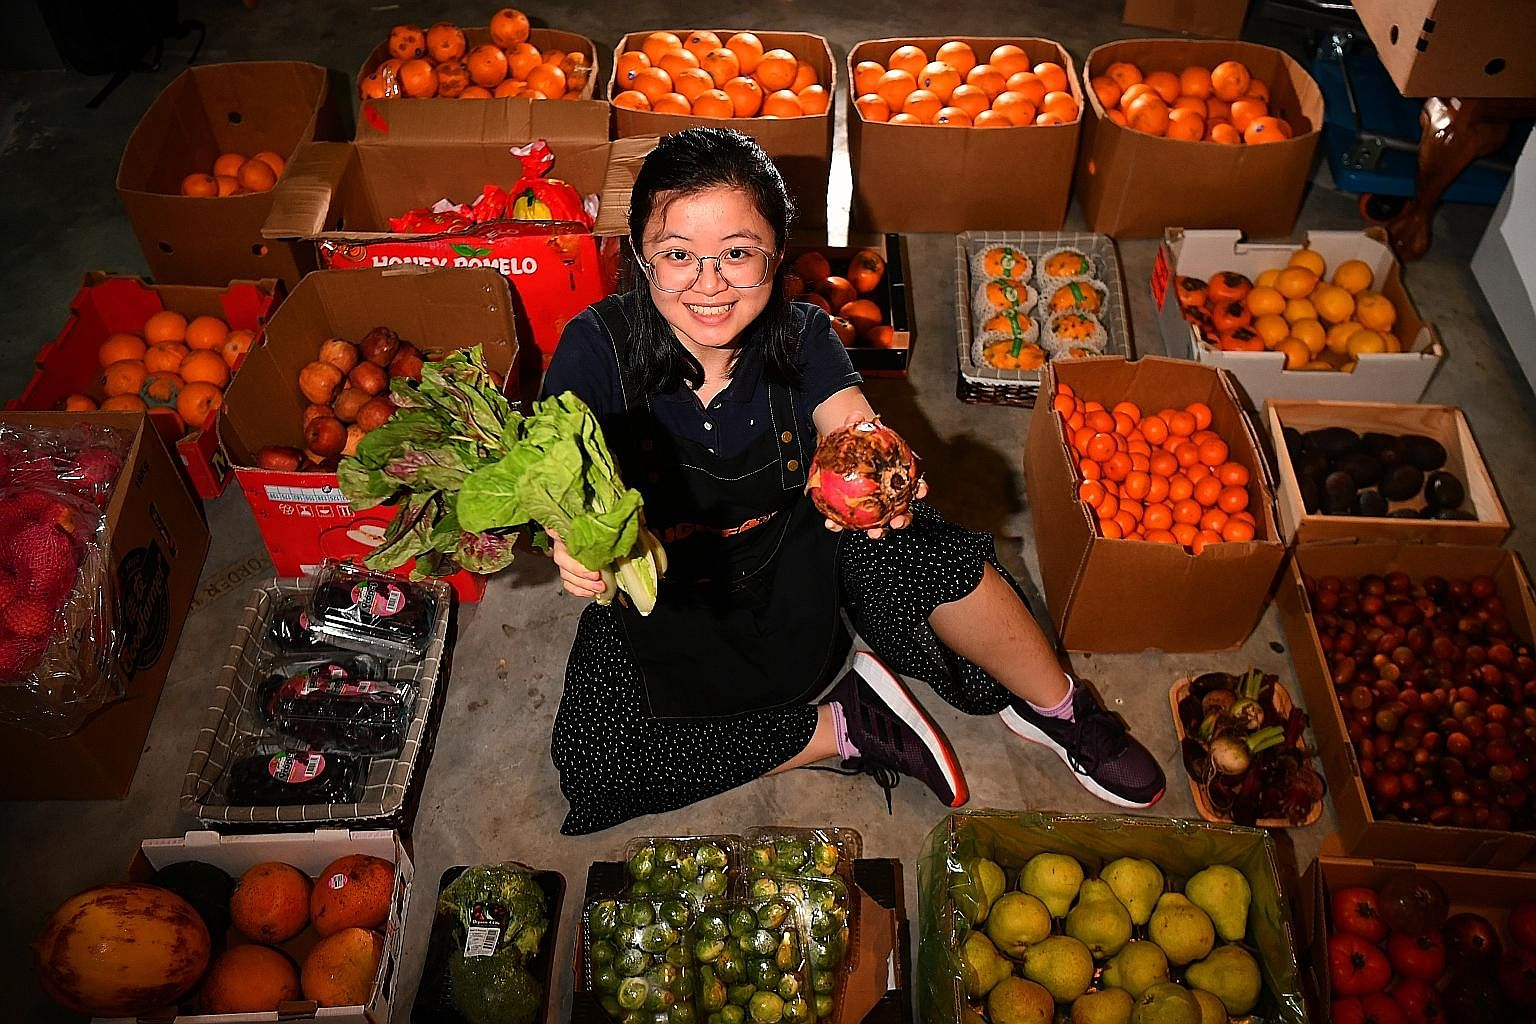 LIM YAOHUI Ms Yeo Pei Shan, co-founder of UglyFood, with the rejected blemished fruit an